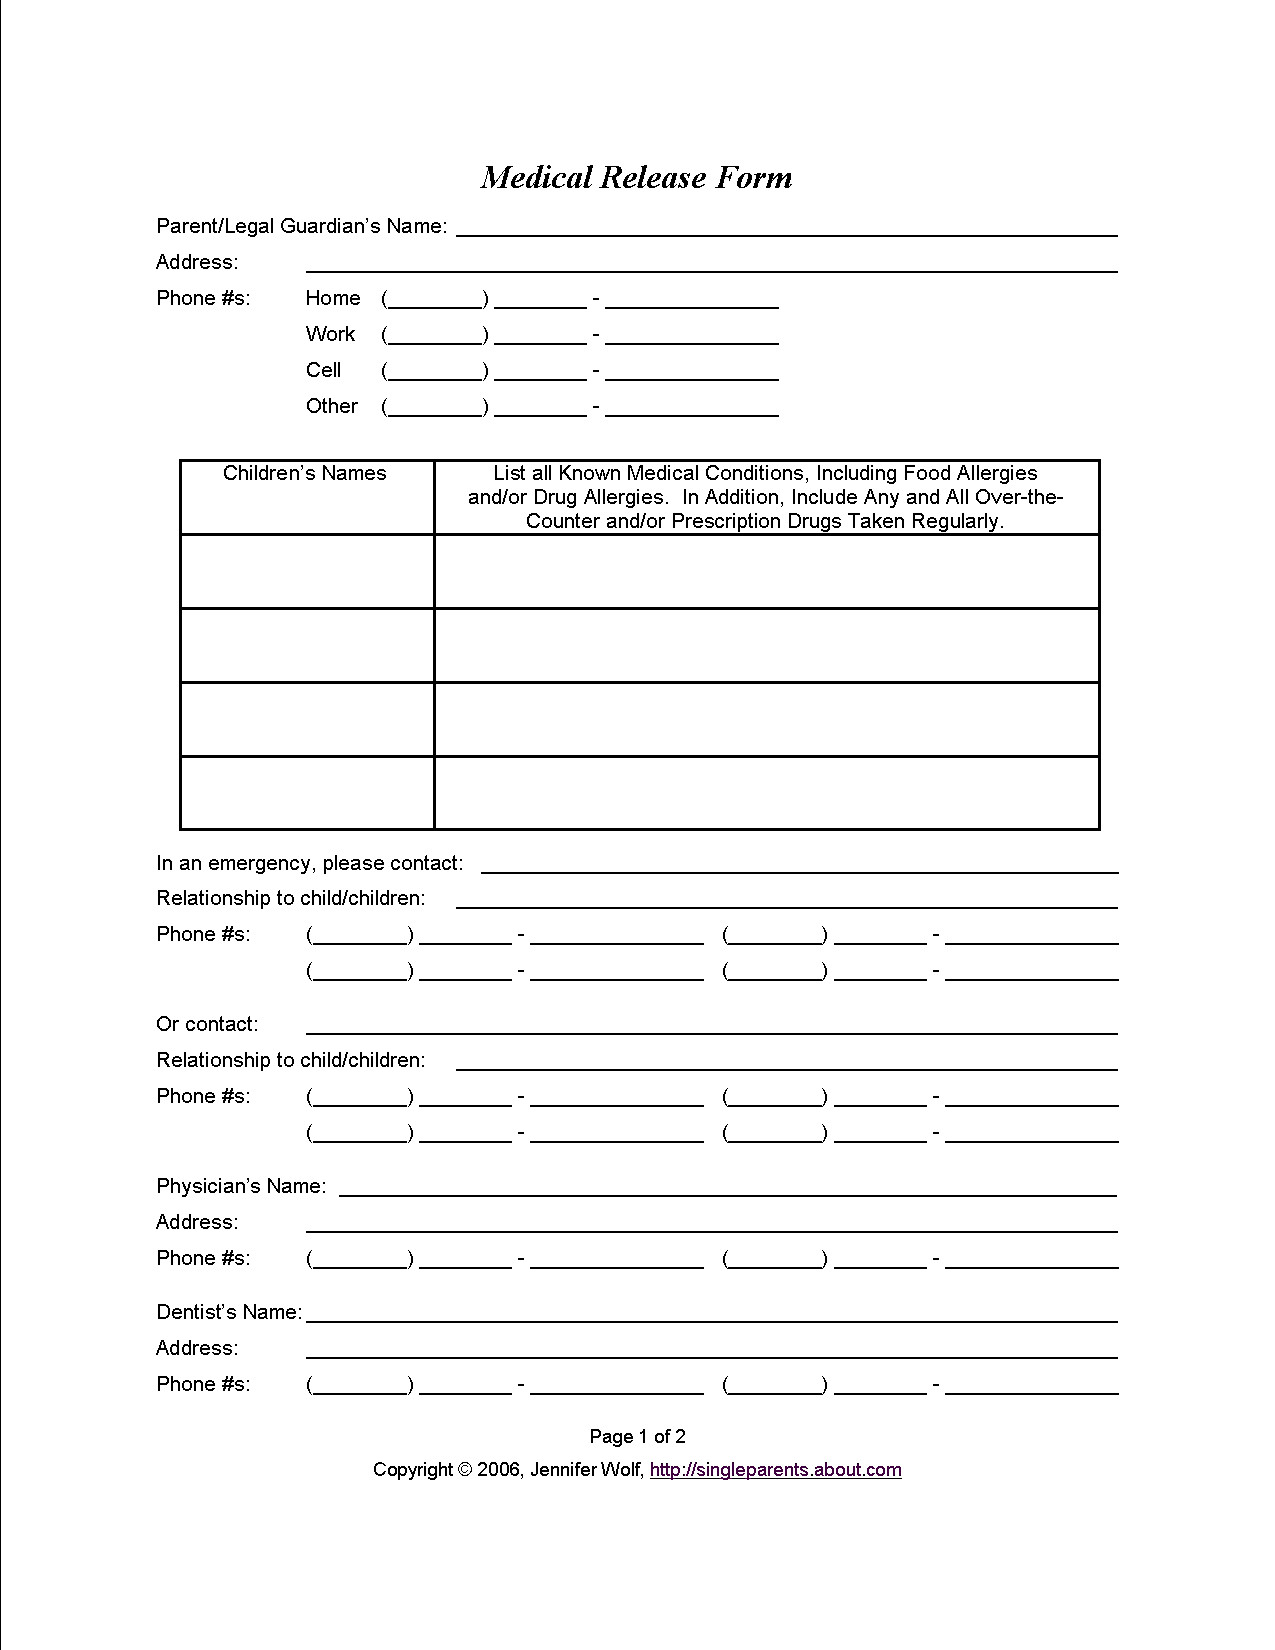 Printable Medical Release form Medical Consent form when You Might Need E